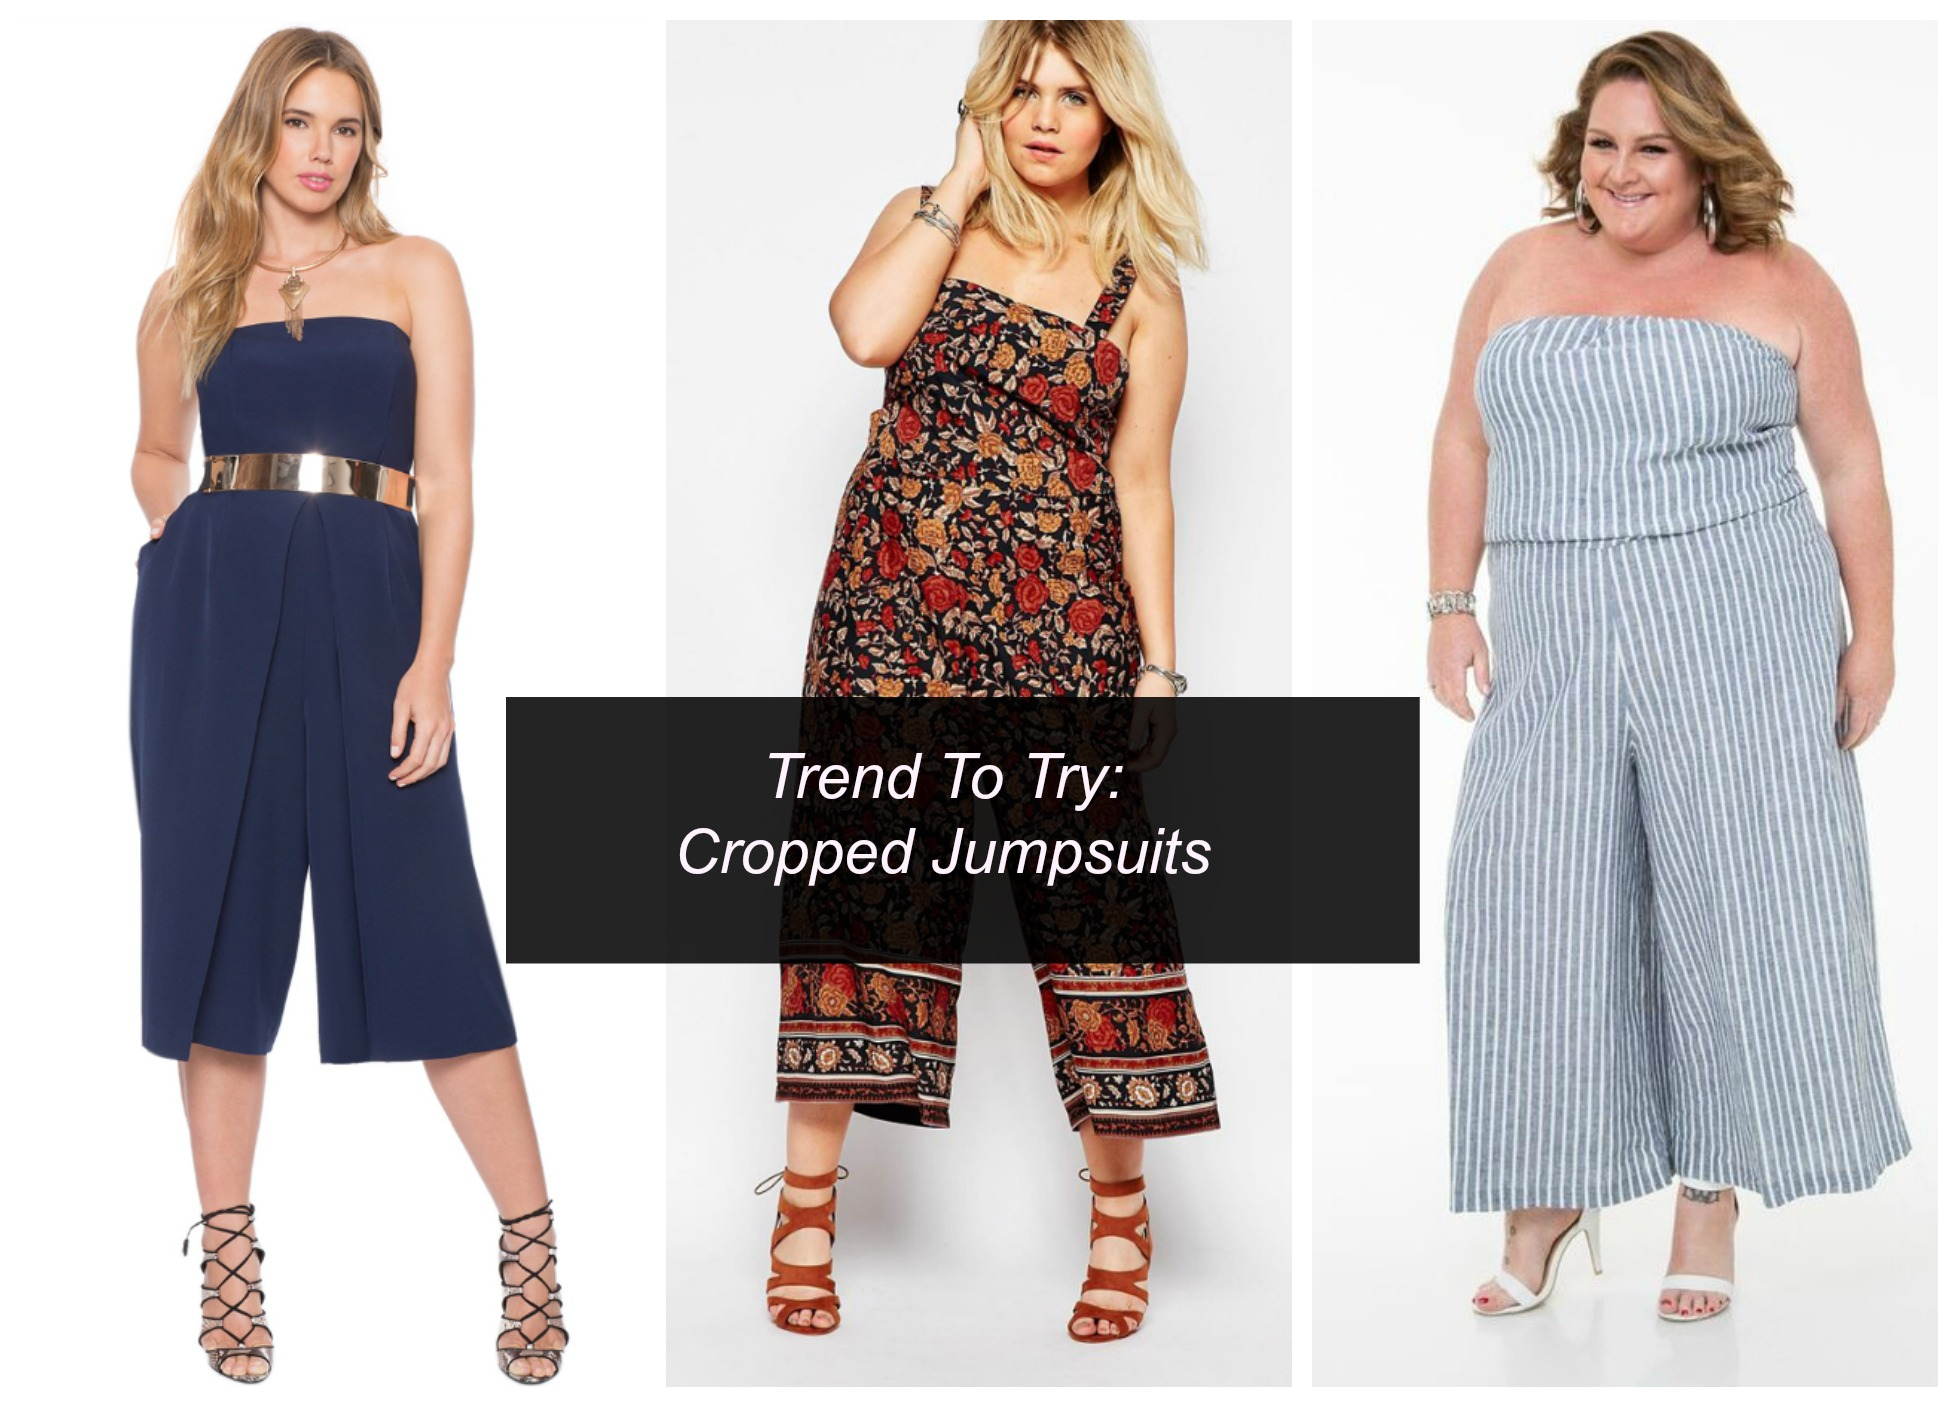 Cropped Jumpsuits 2